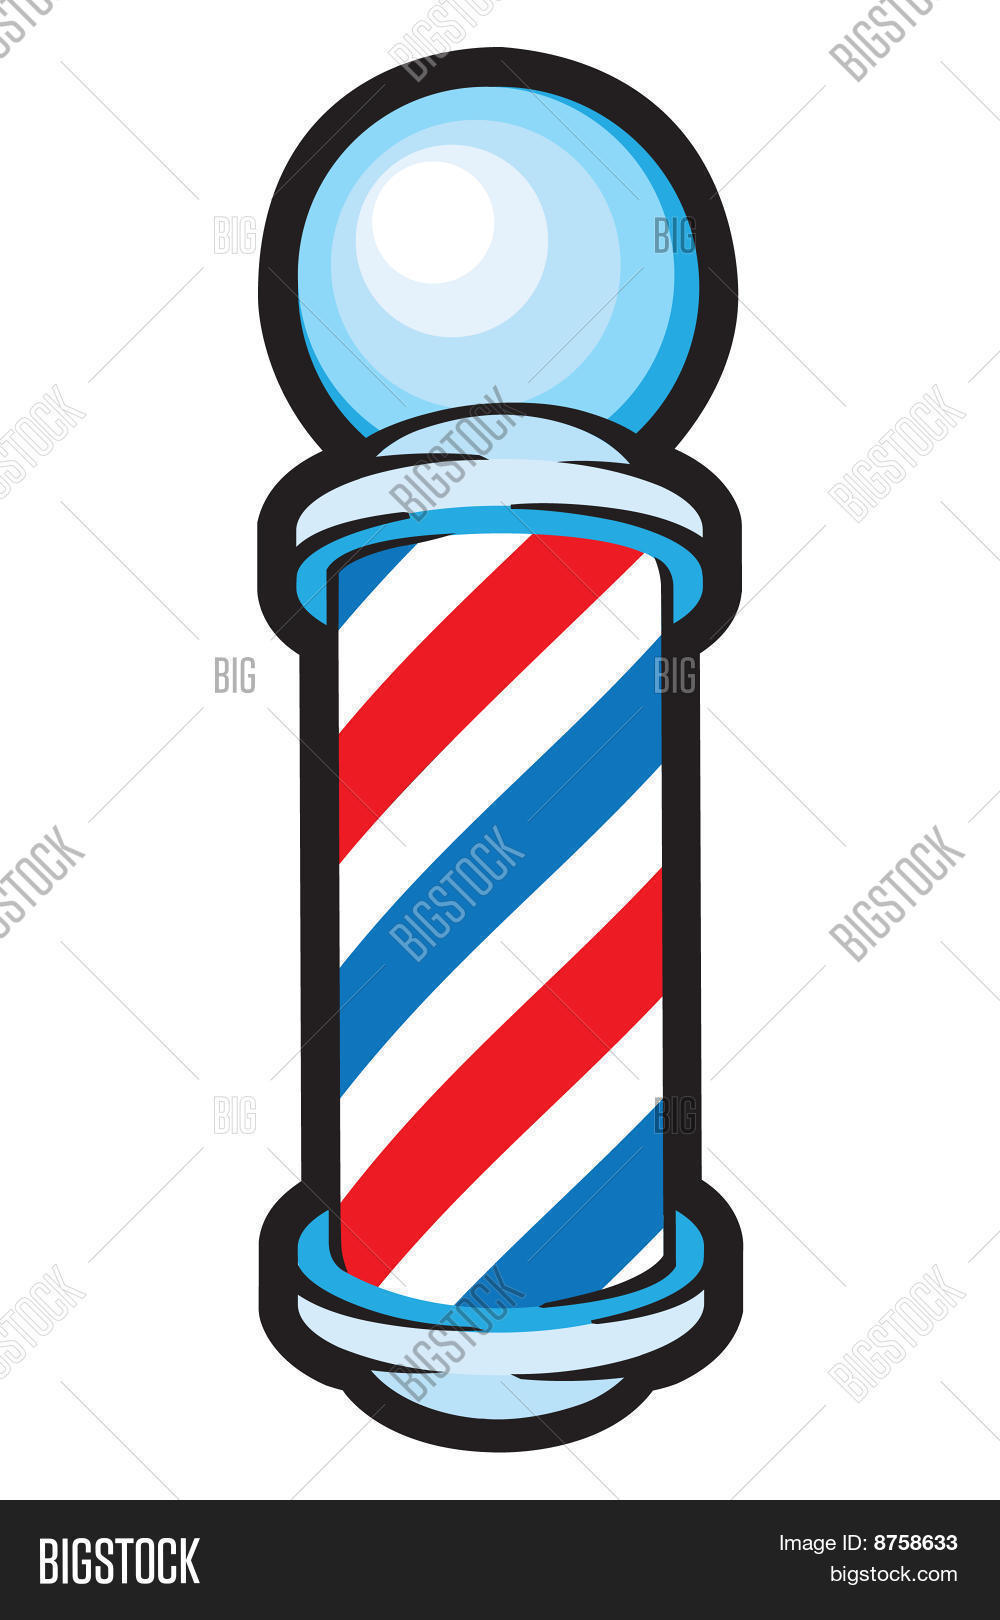 Barber Vector : Barber Pole Stock Vector & Stock Photos Bigstock